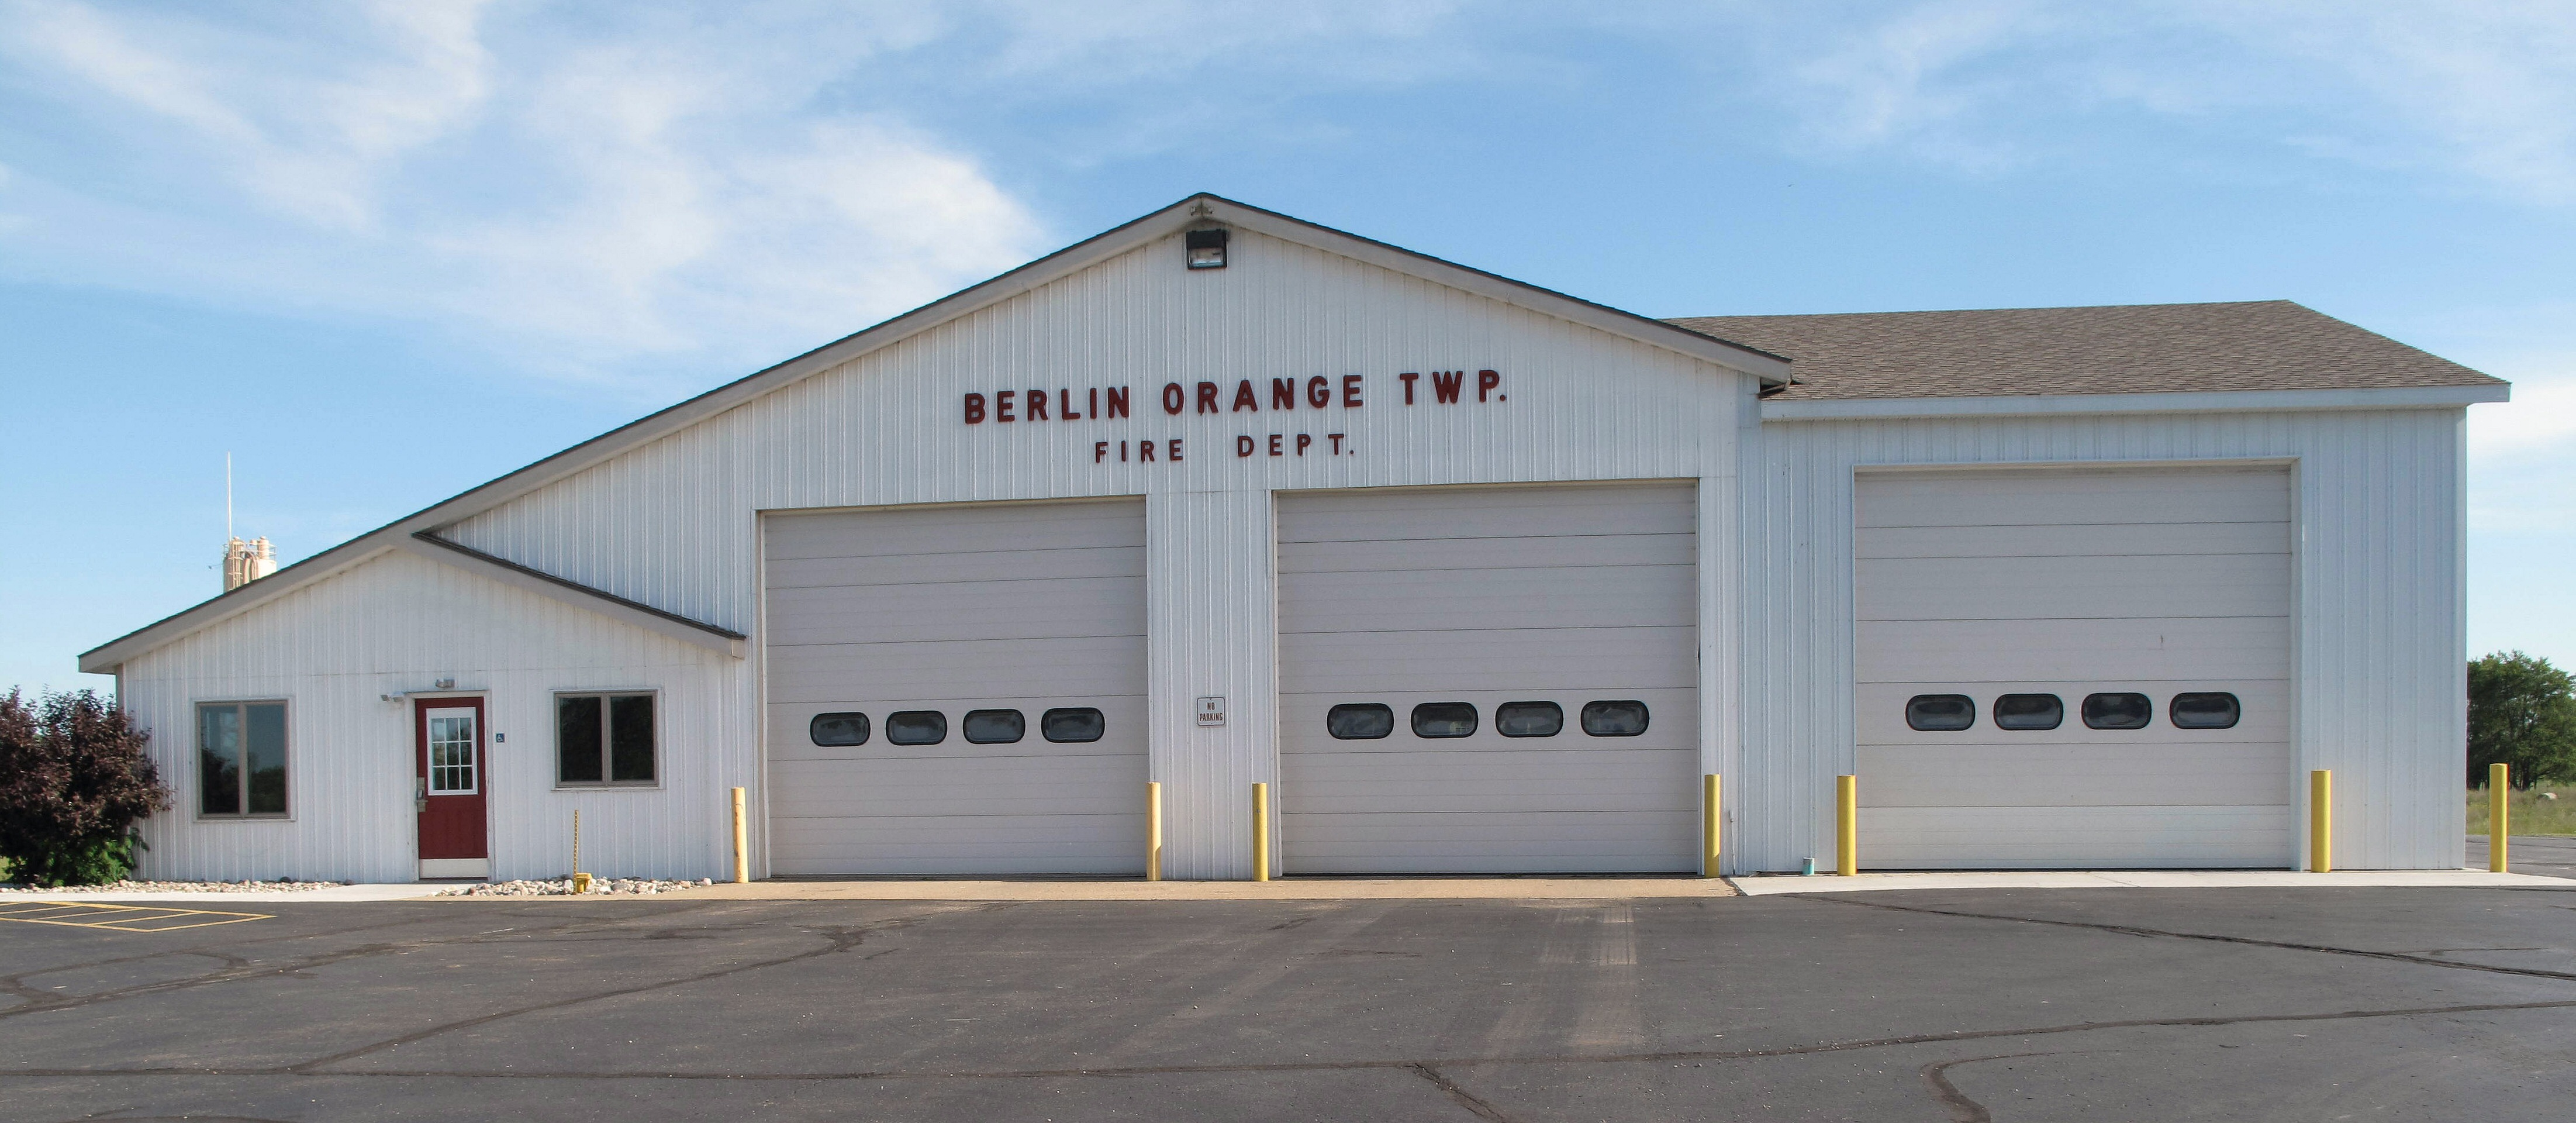 Orange township ionia county michigan thanks for visiting orange township we are situated in mid michigan in the south western part of ionia county a population of approximately 1000 residents publicscrutiny Gallery